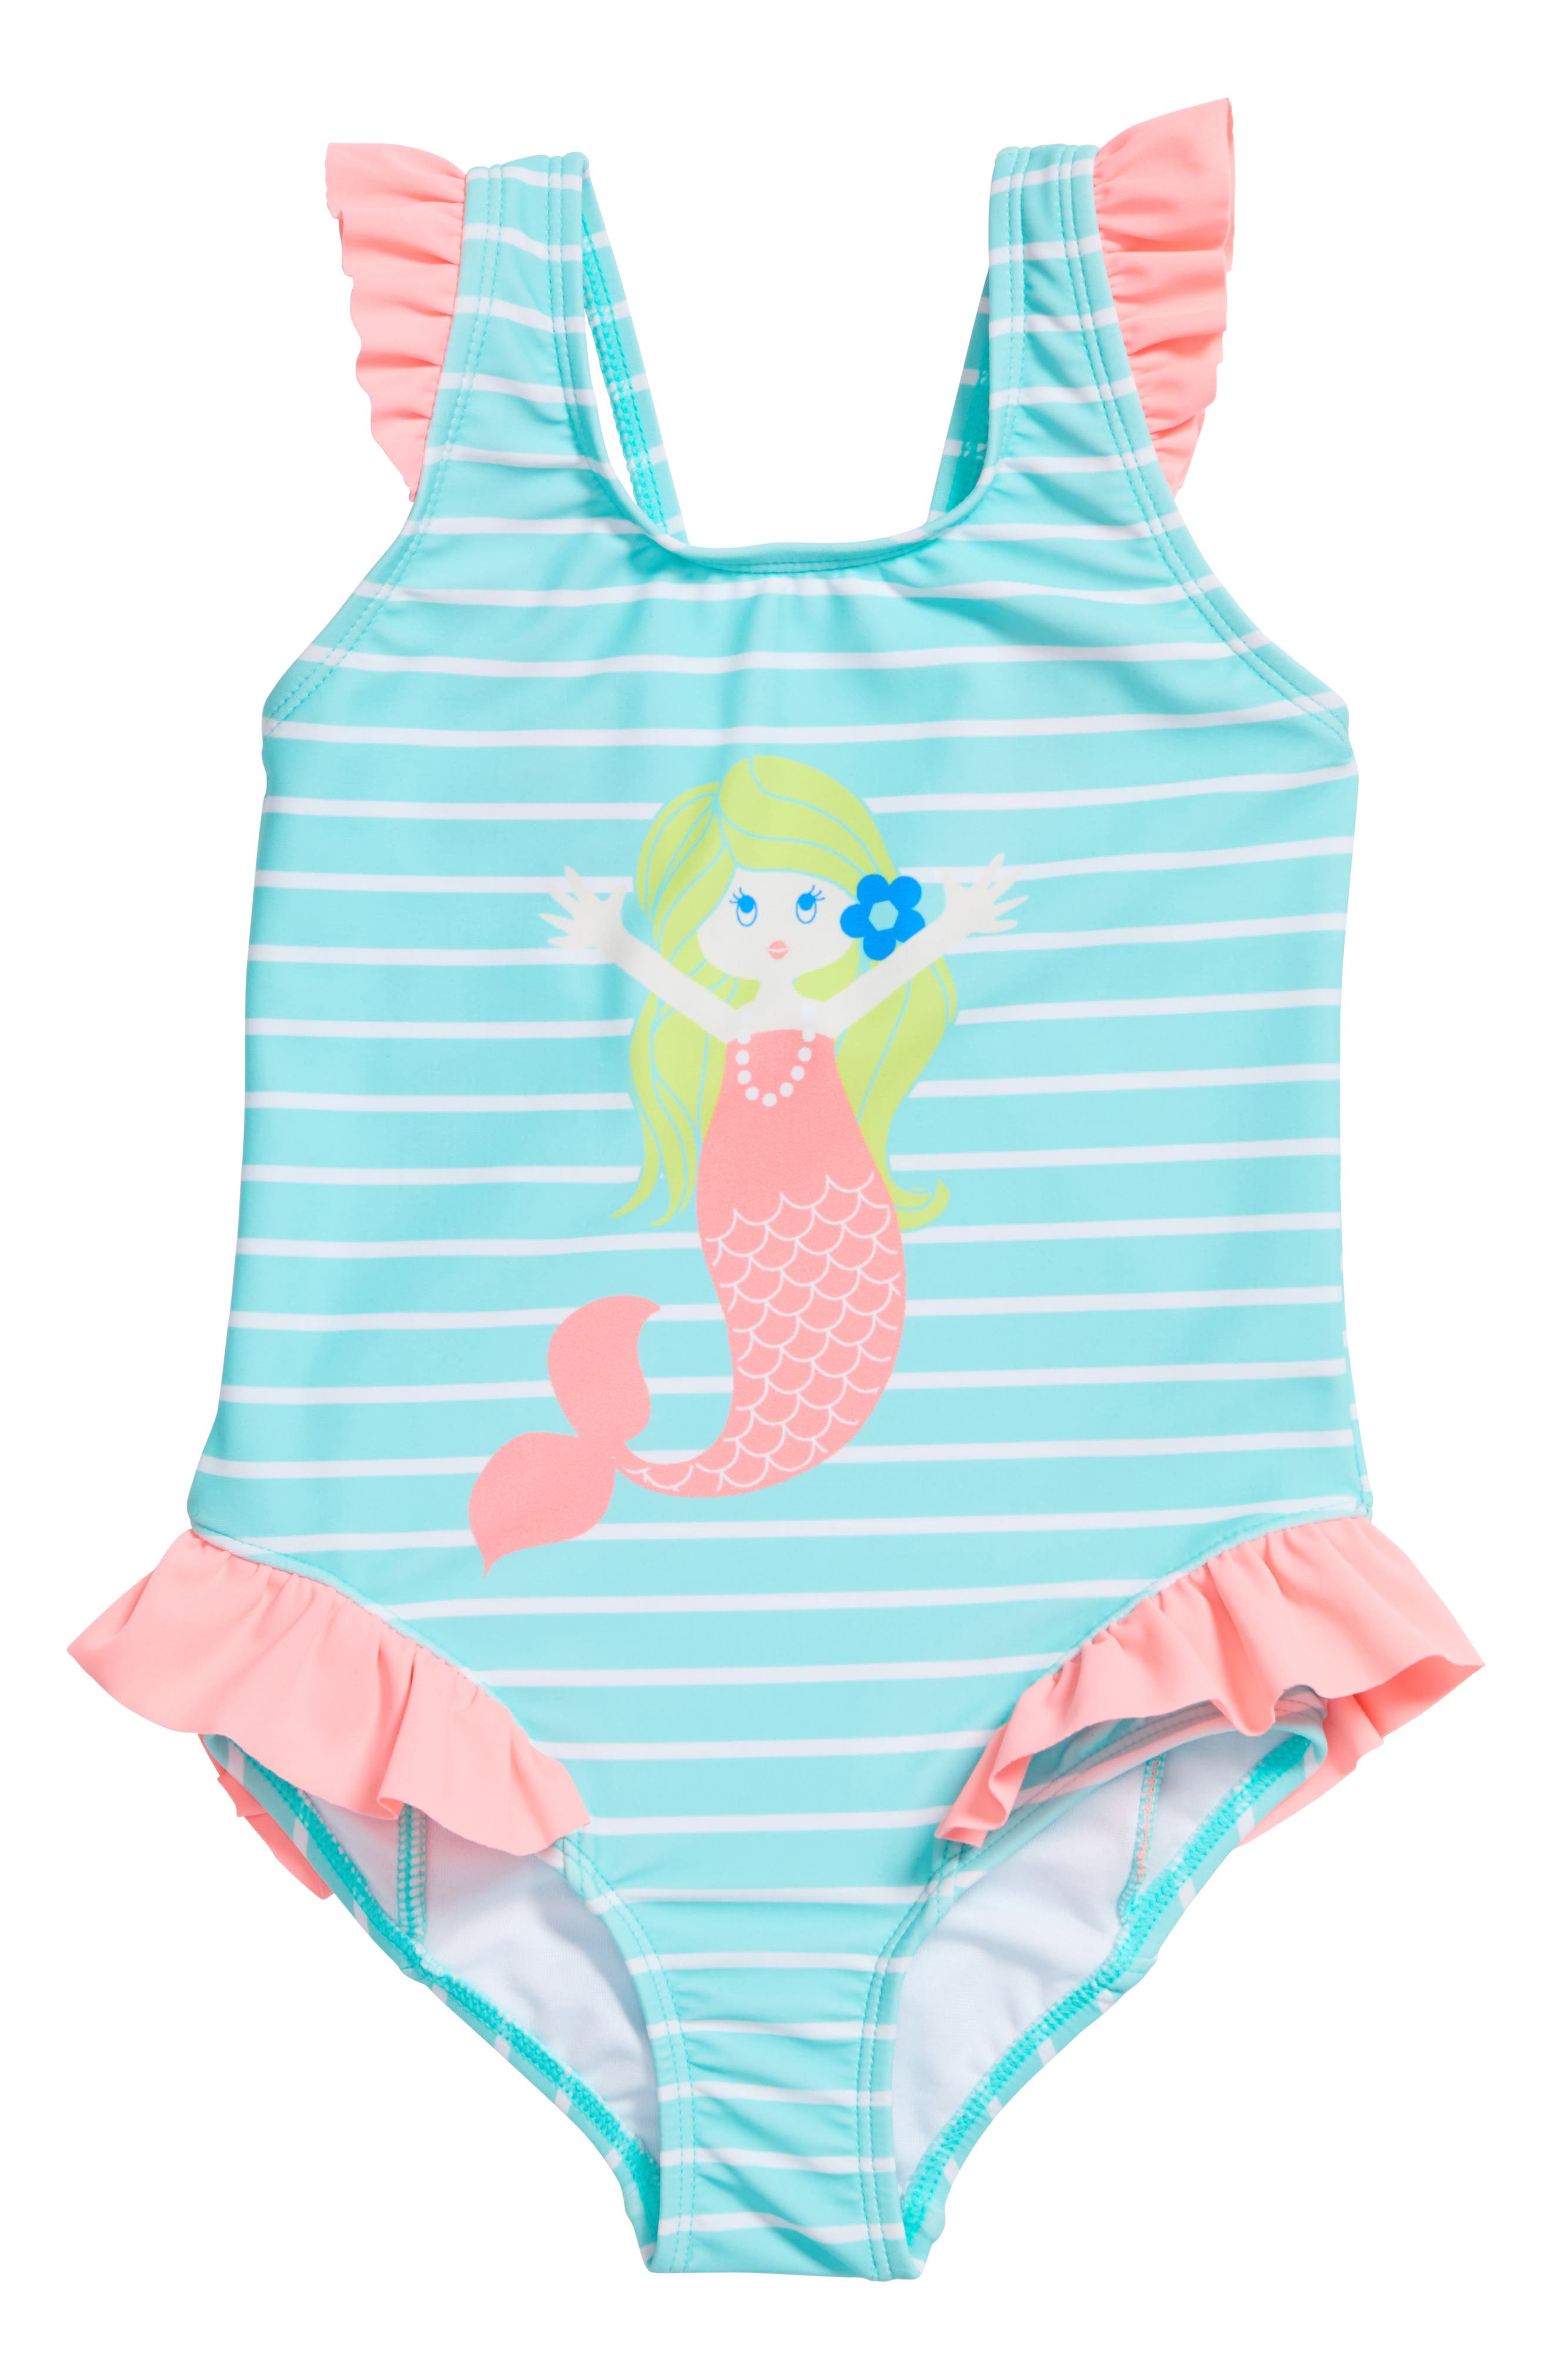 Main Image - Hula Star All Is Love One-Piece Swimsuit (Toddler Girls & Little Girls)